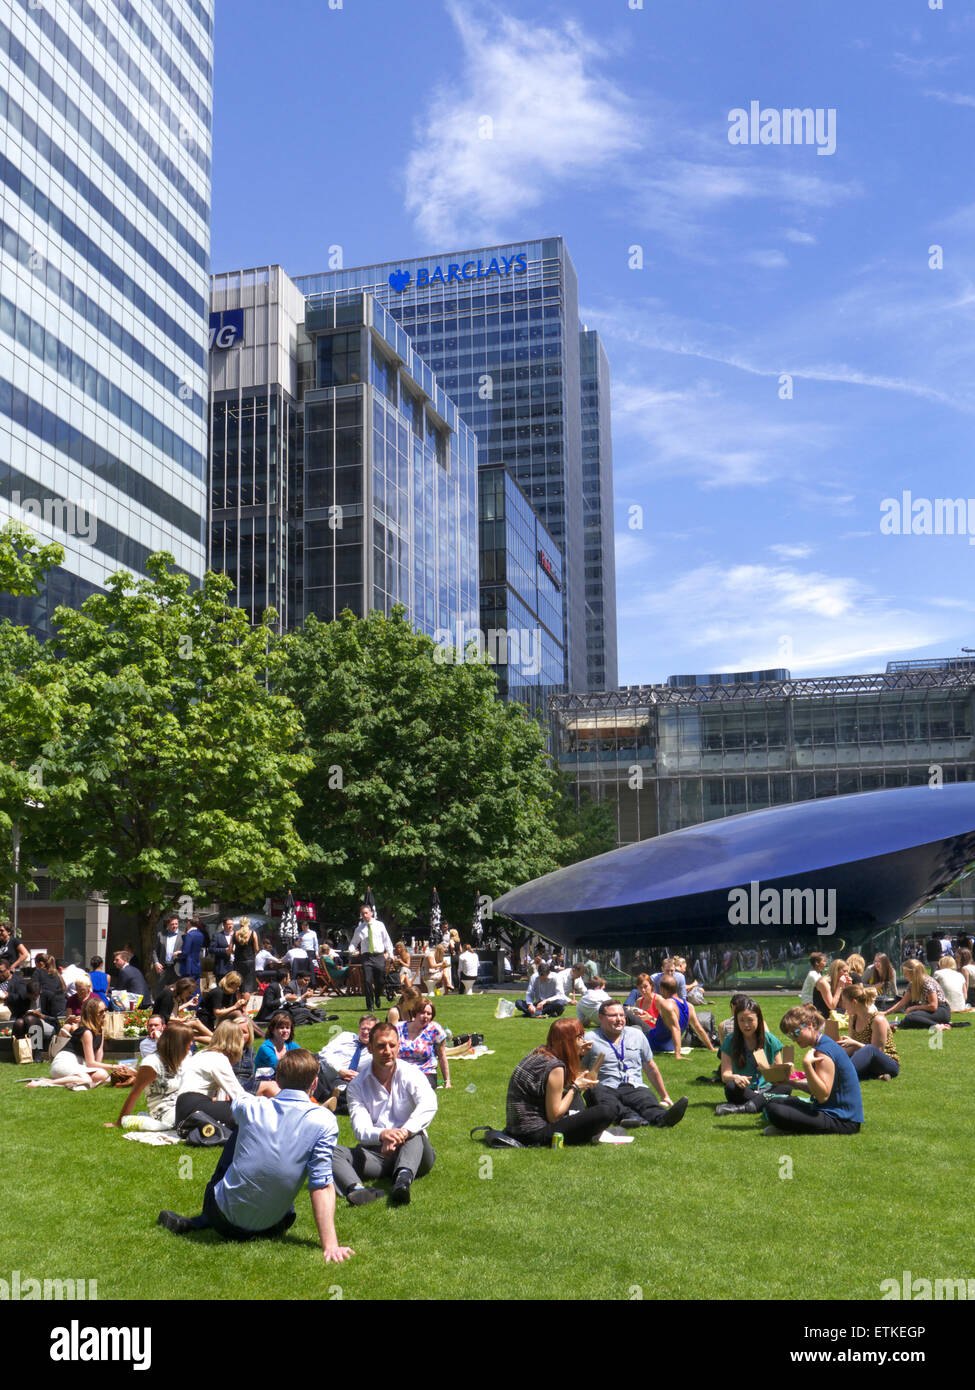 Canary Wharf workers taking a lunch break in summer sun on newly laid grass lawn with offices including Barclays - Stock Image